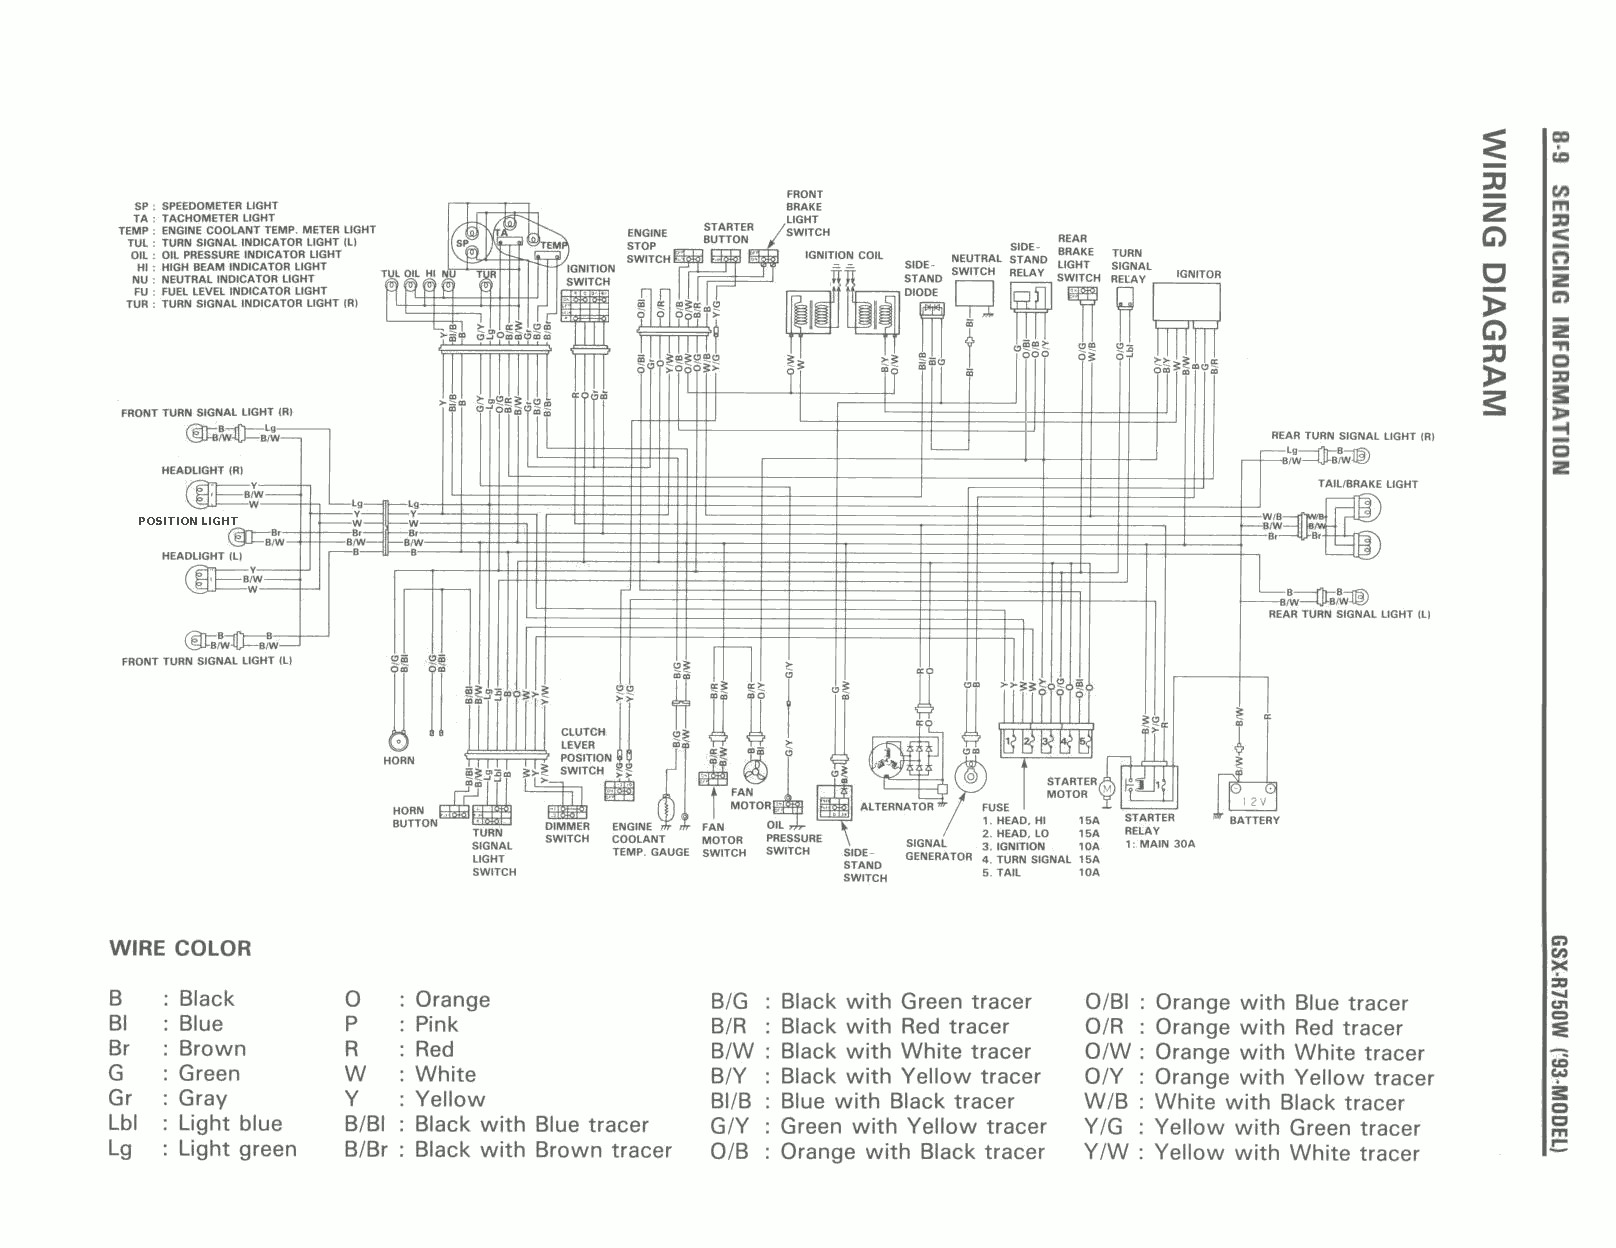 Perfect lt 250r wiring diagram picture collection wiring diagram quadzilla 450 wiring diagram mesmerizing black white wiring plug asfbconference2016 Images